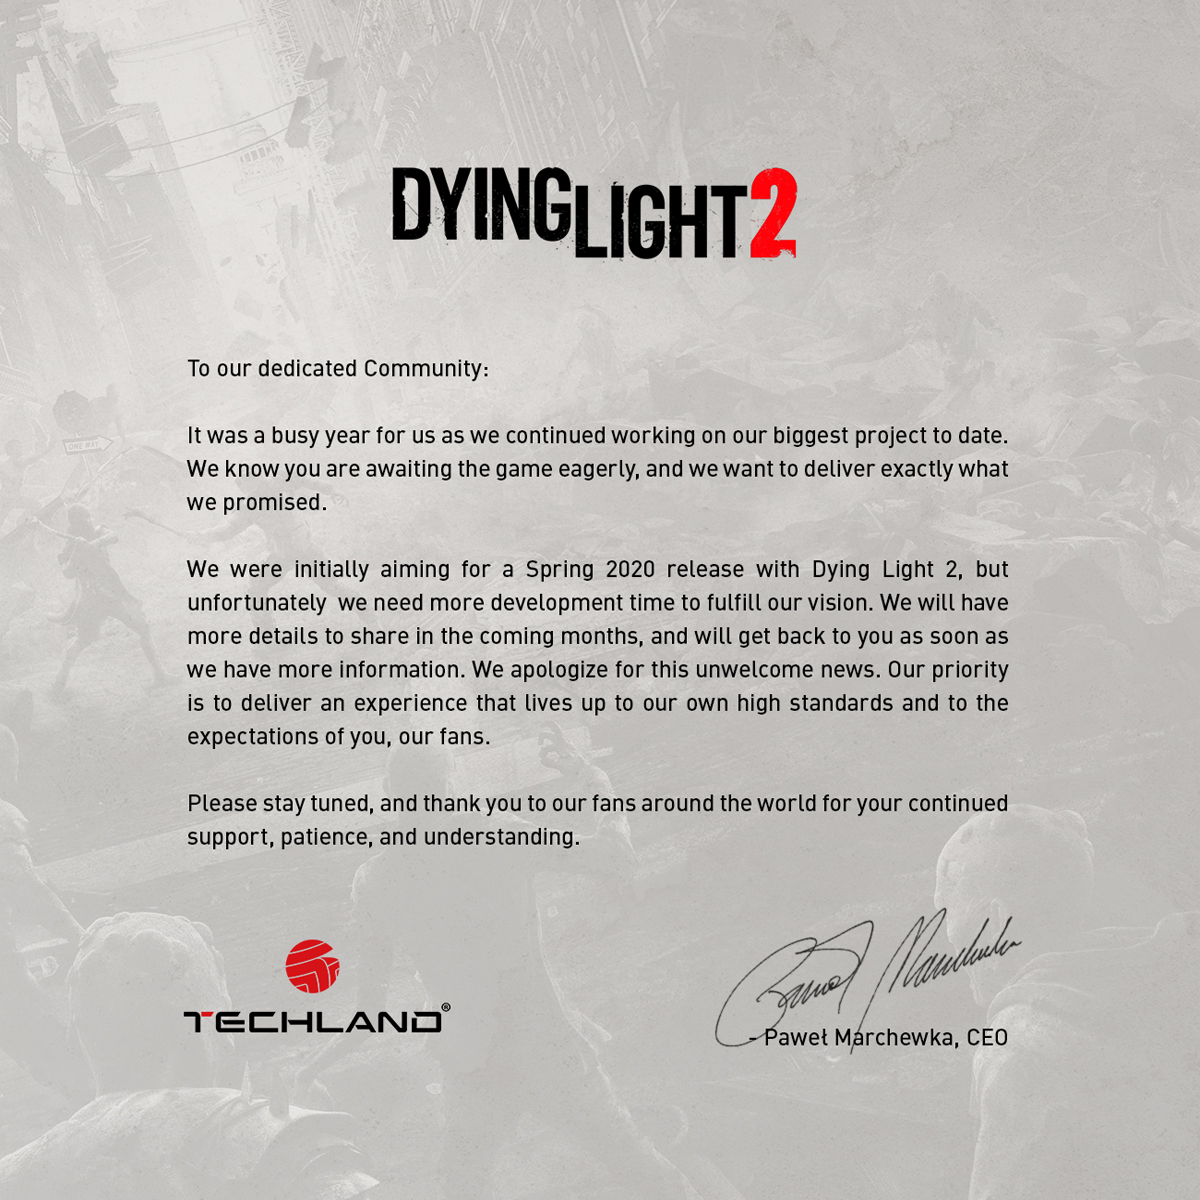 @DyingLightGame's photo on Dying Light 2